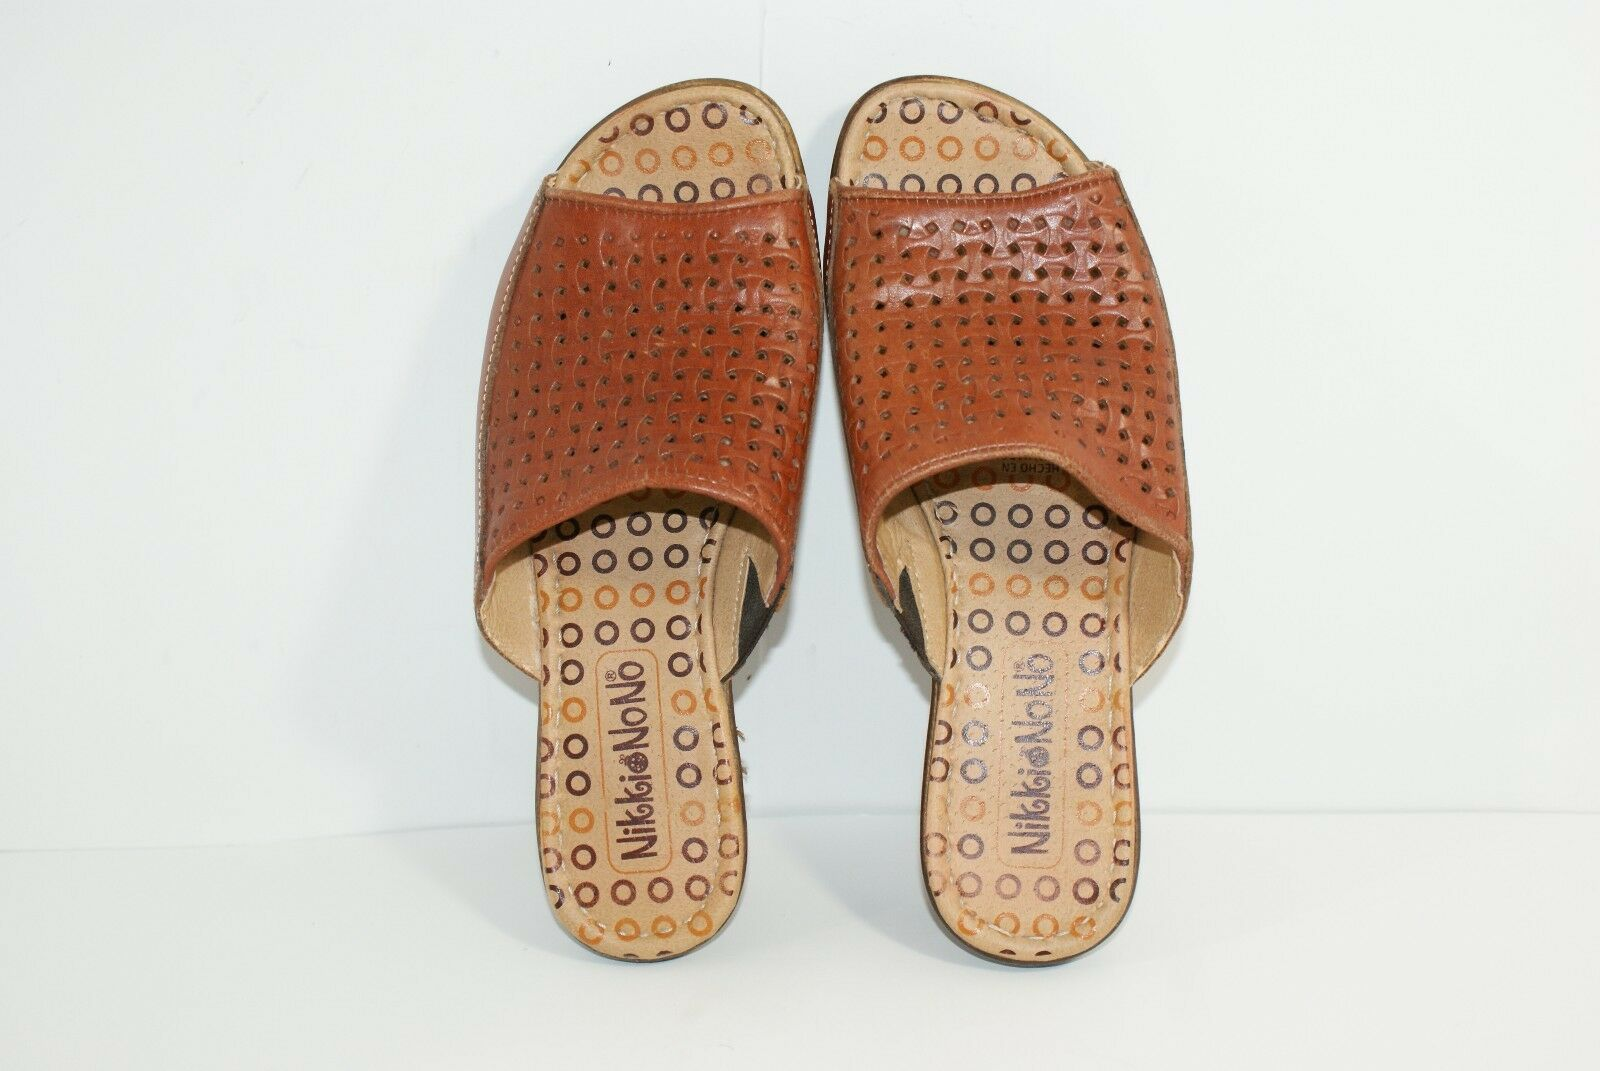 Nikki Nono Perforated Women's Leather Slip On Mules Women's Perforated 7.5 Open Toe Brown Shoes ef3b17